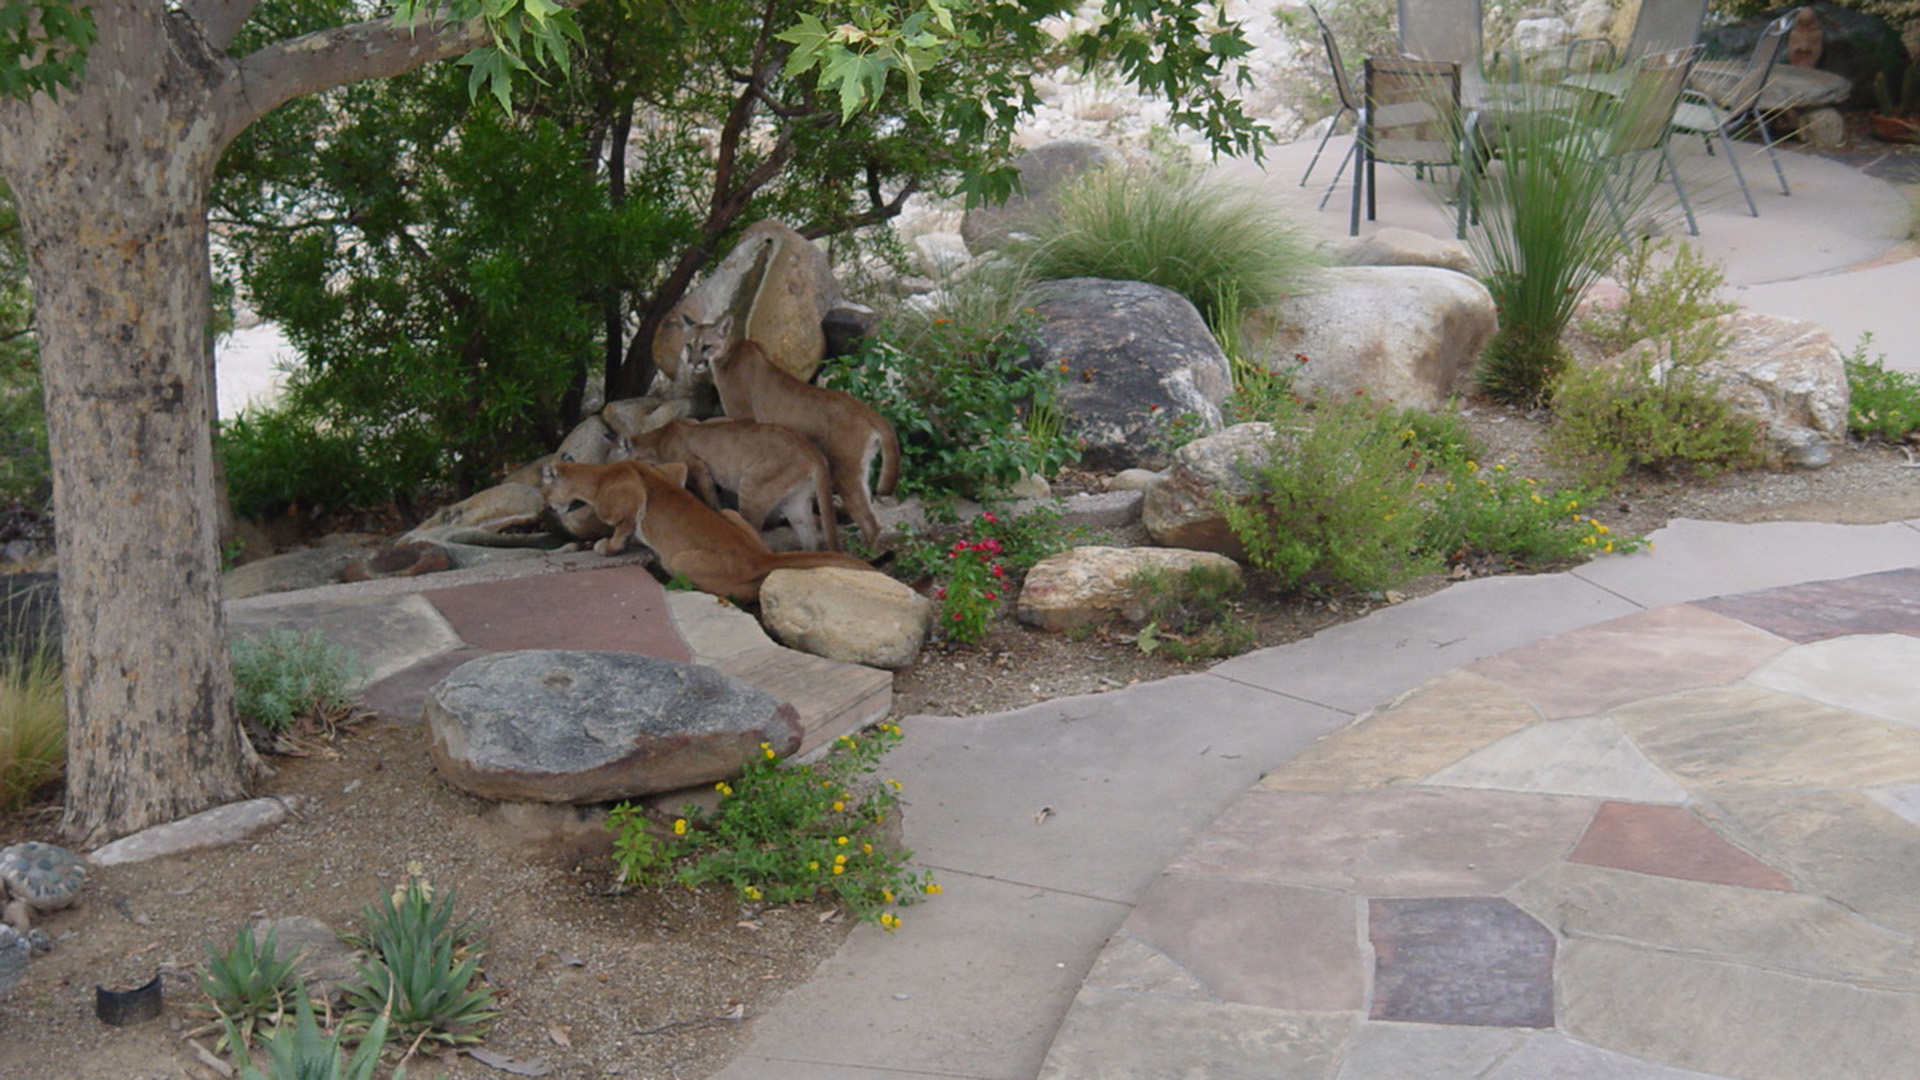 Three mountain lions spotted in a yard along Sabino Creek, Wednesday, July 24, 2019.